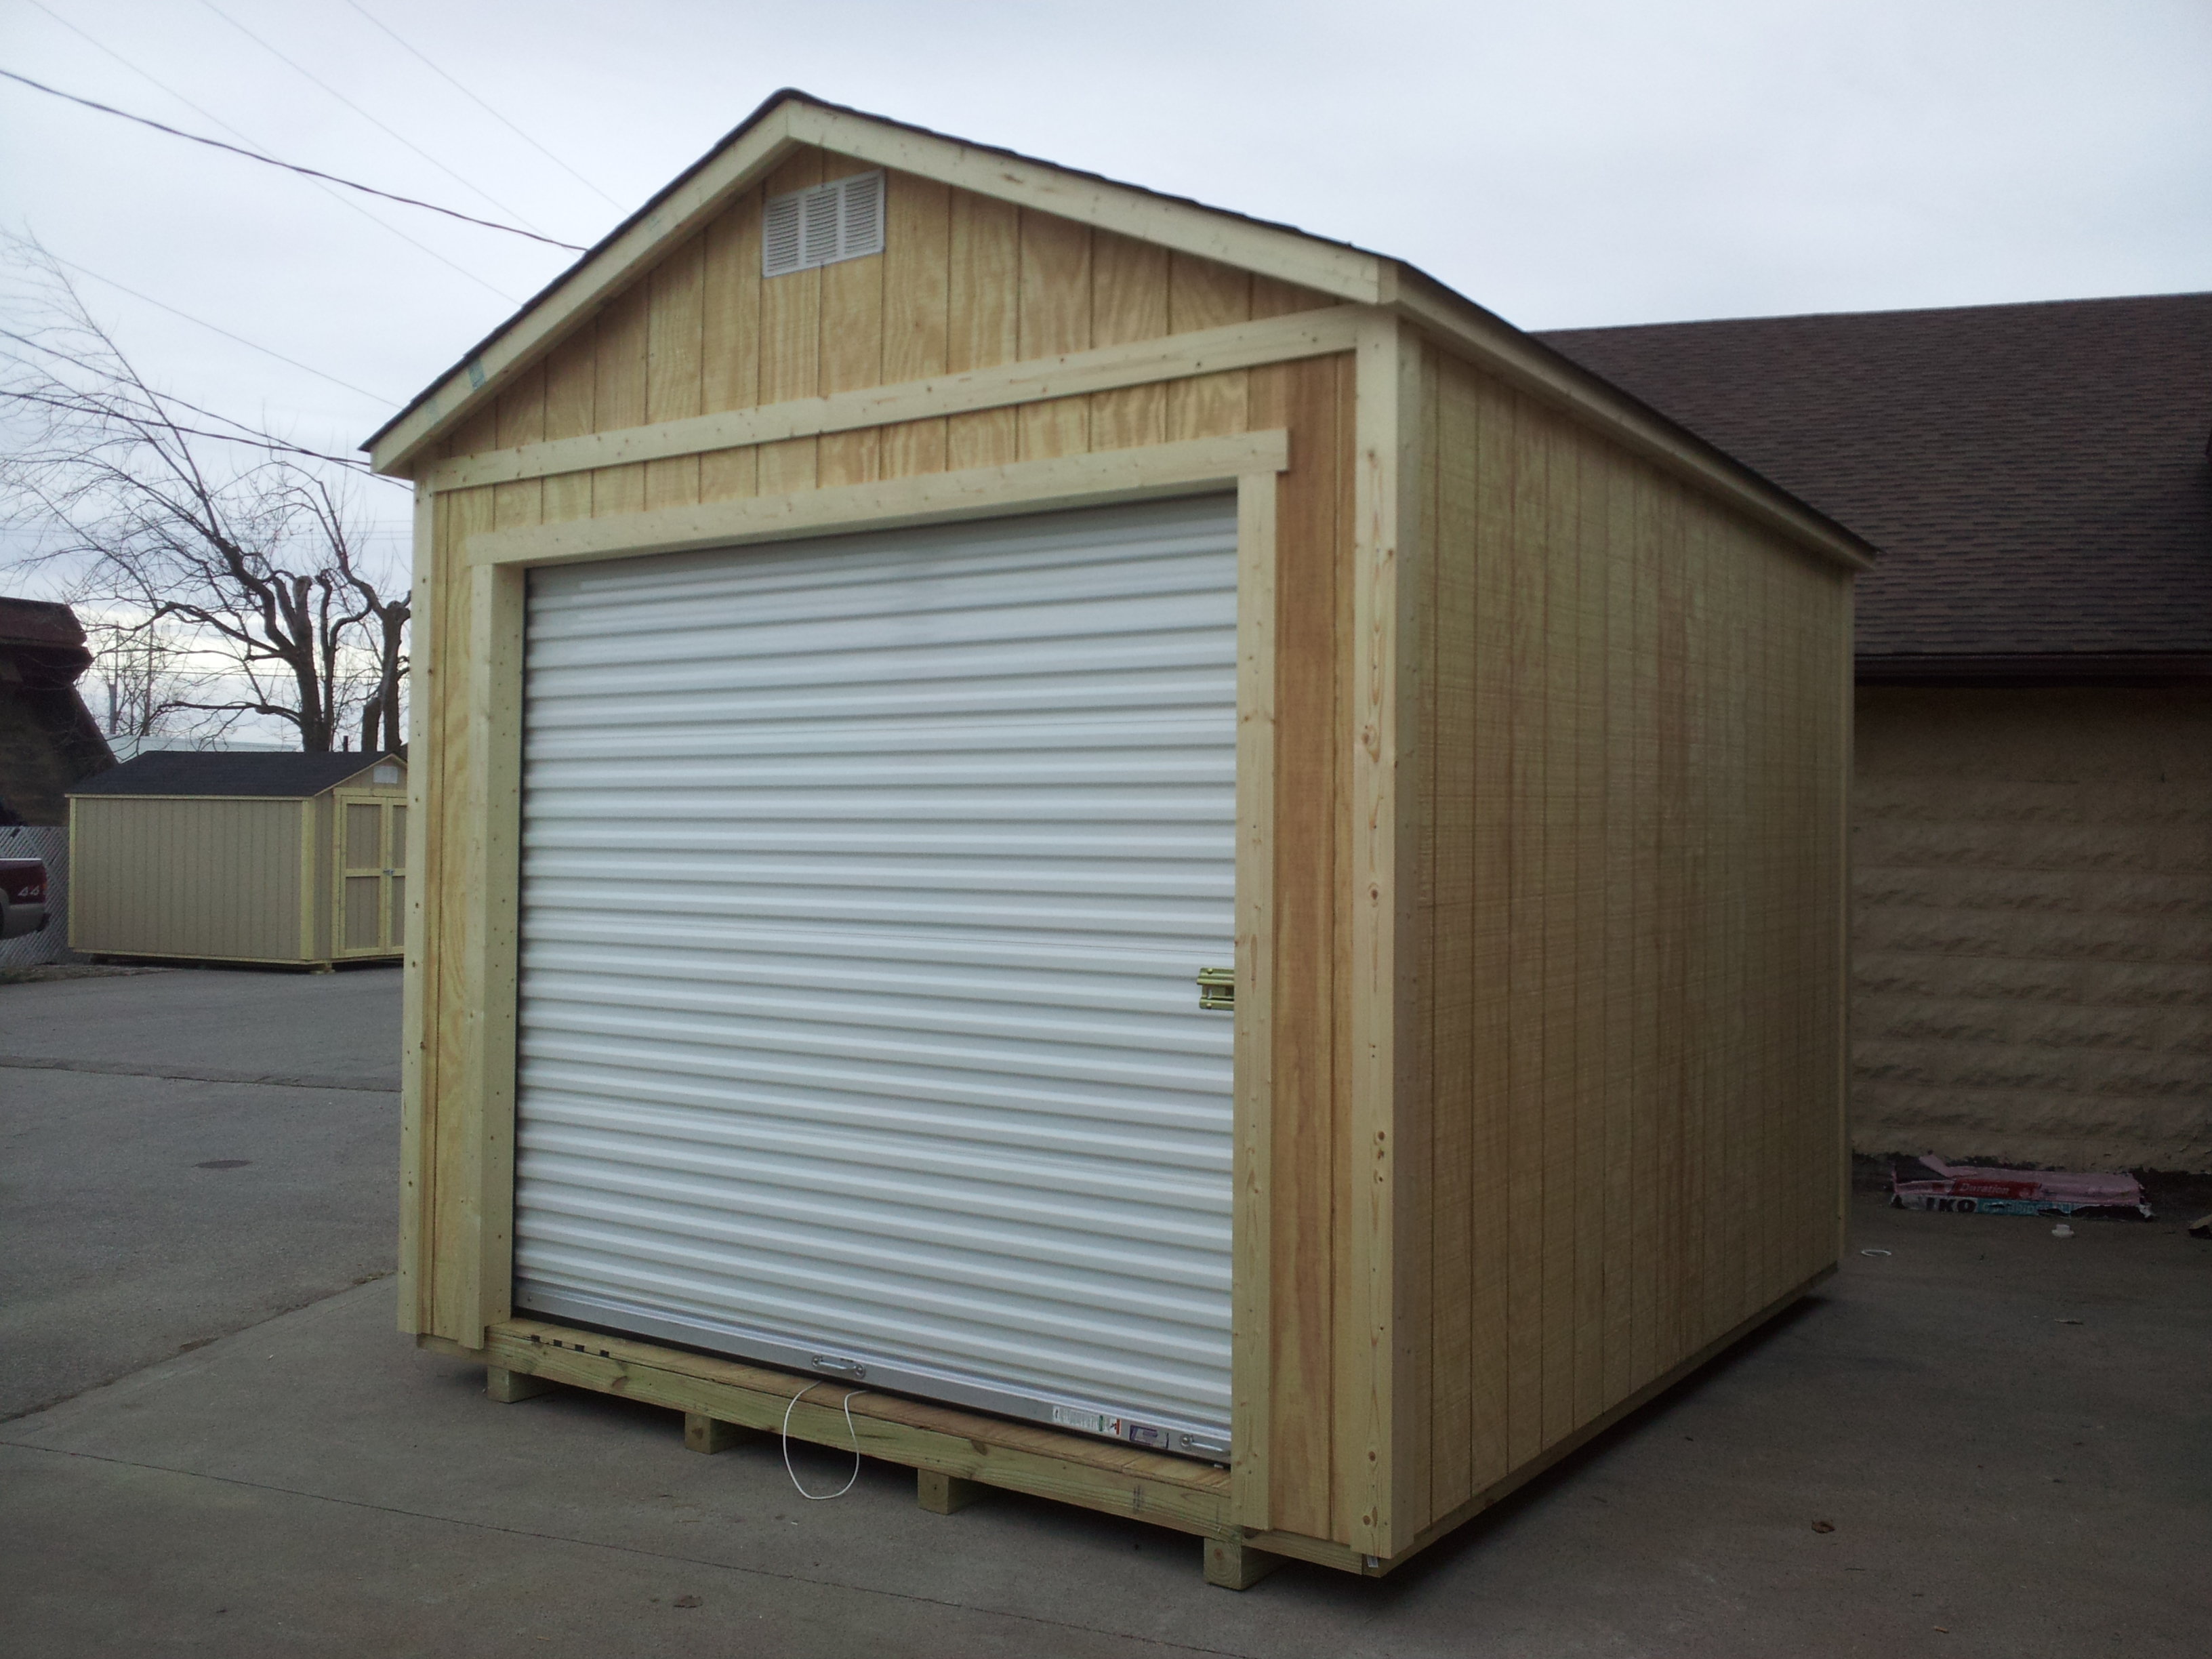 6758 New Roll Up Storage Shed Doors Mini Bunda Daffa Snapshot Of